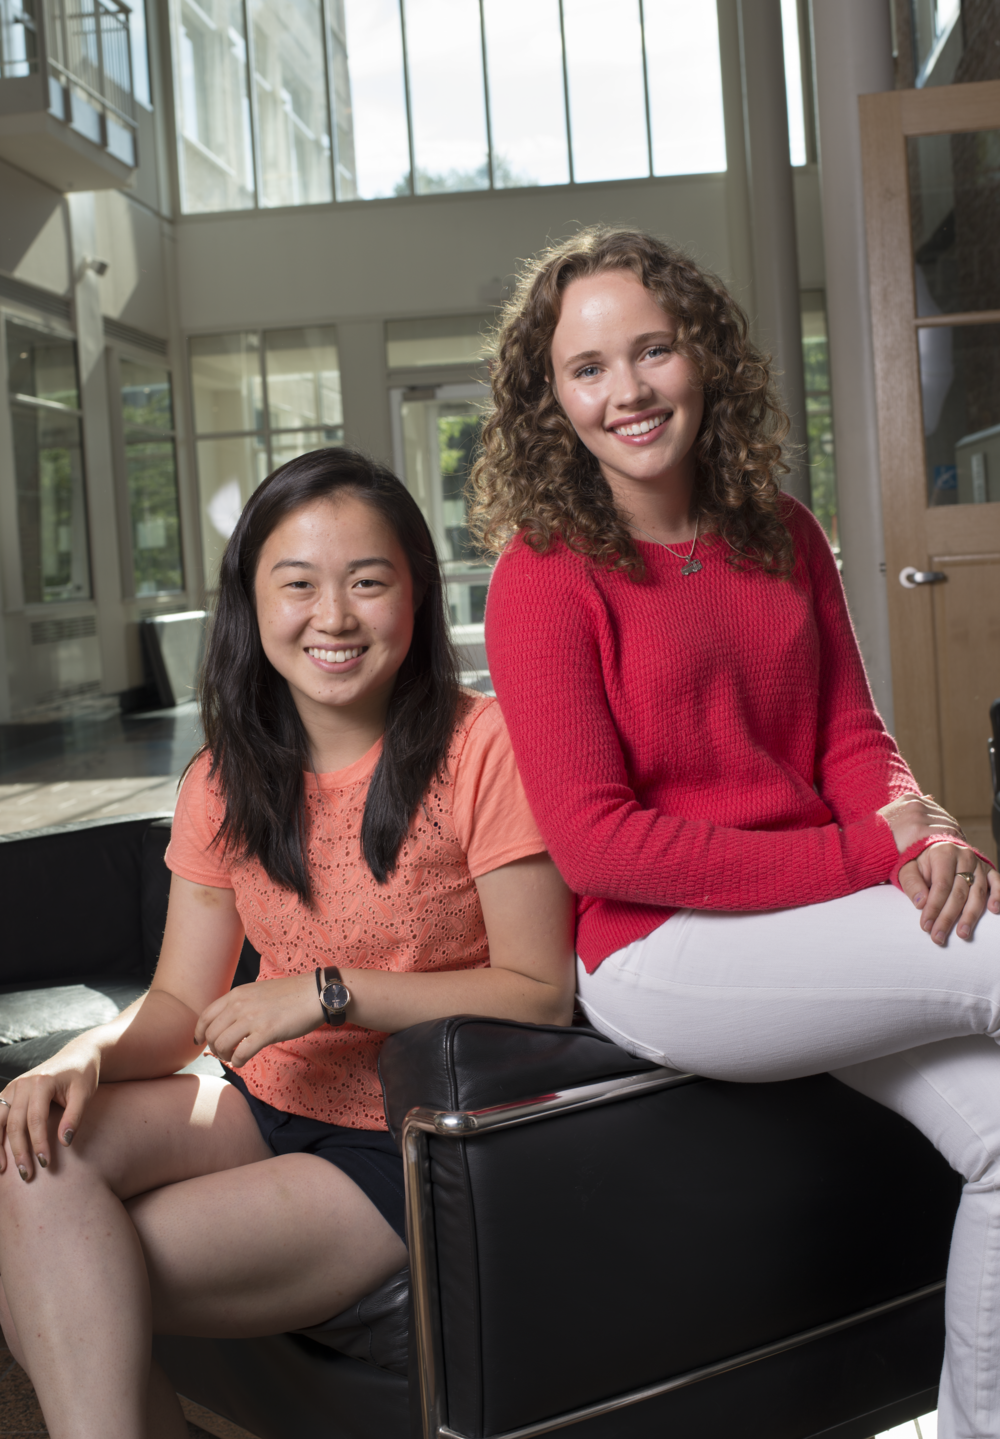 Tray Bien co-founders Shinri Kamei (left) and Krystyna Miles (right) in the Atrium of the Thayer School of Engineering